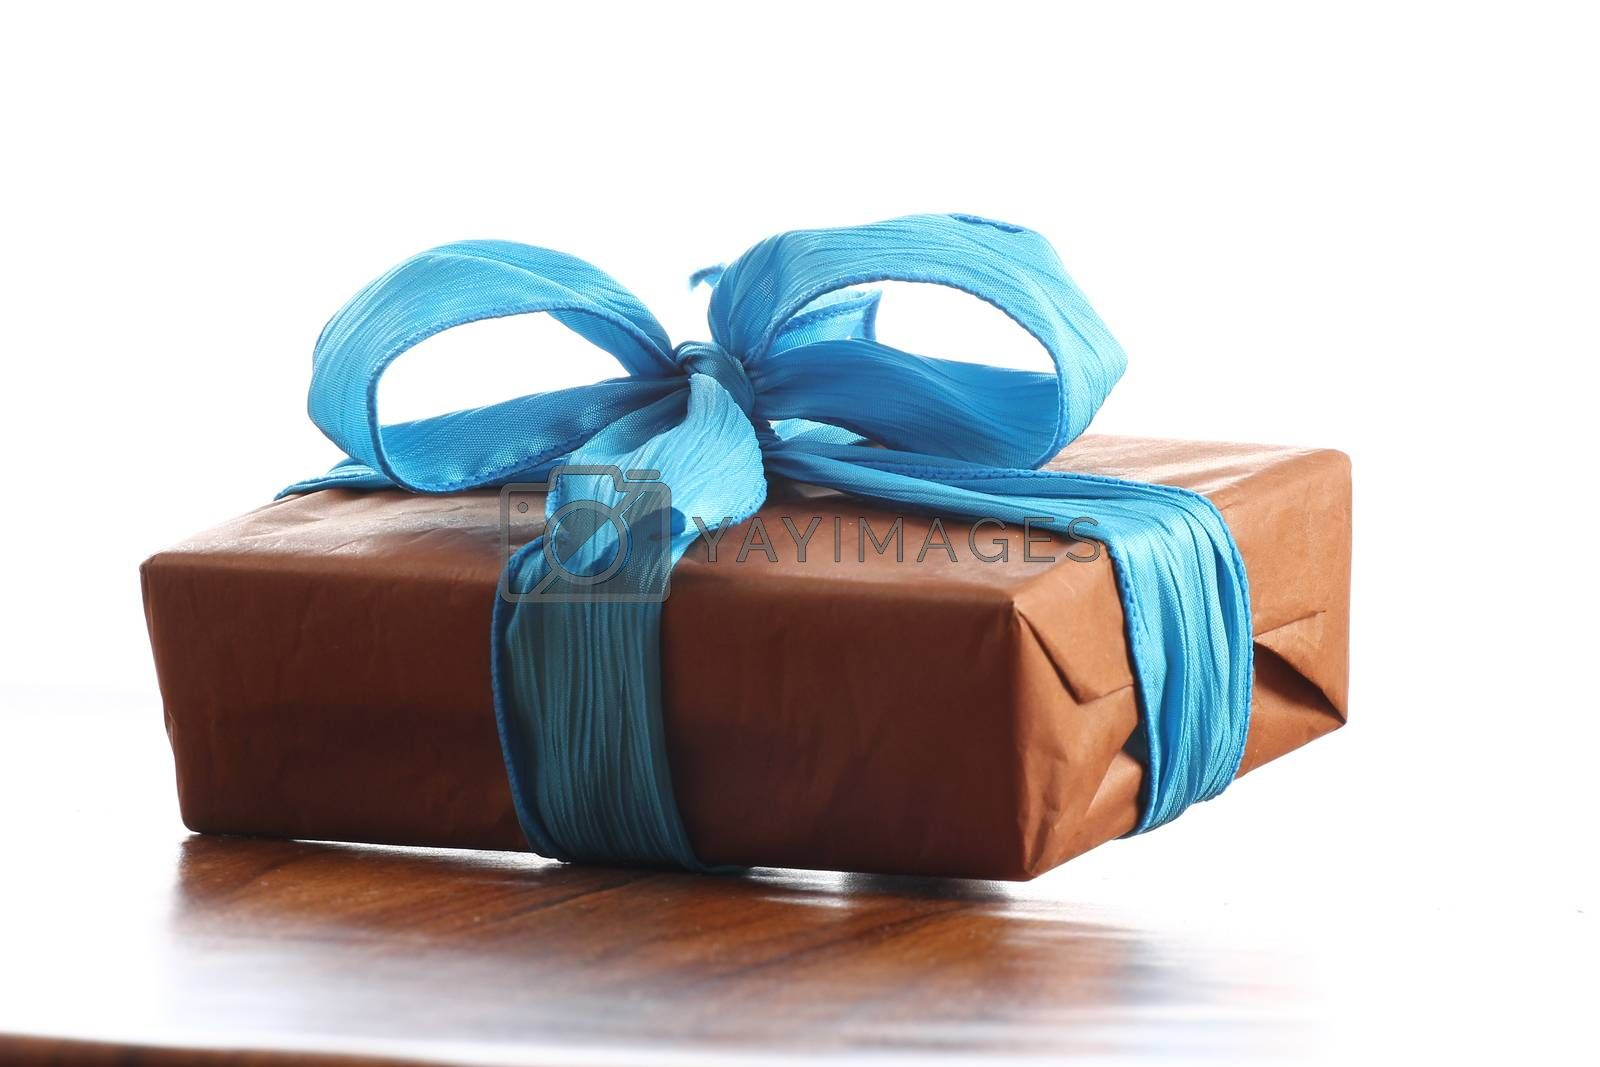 Presents packaged and ready to give a loved one